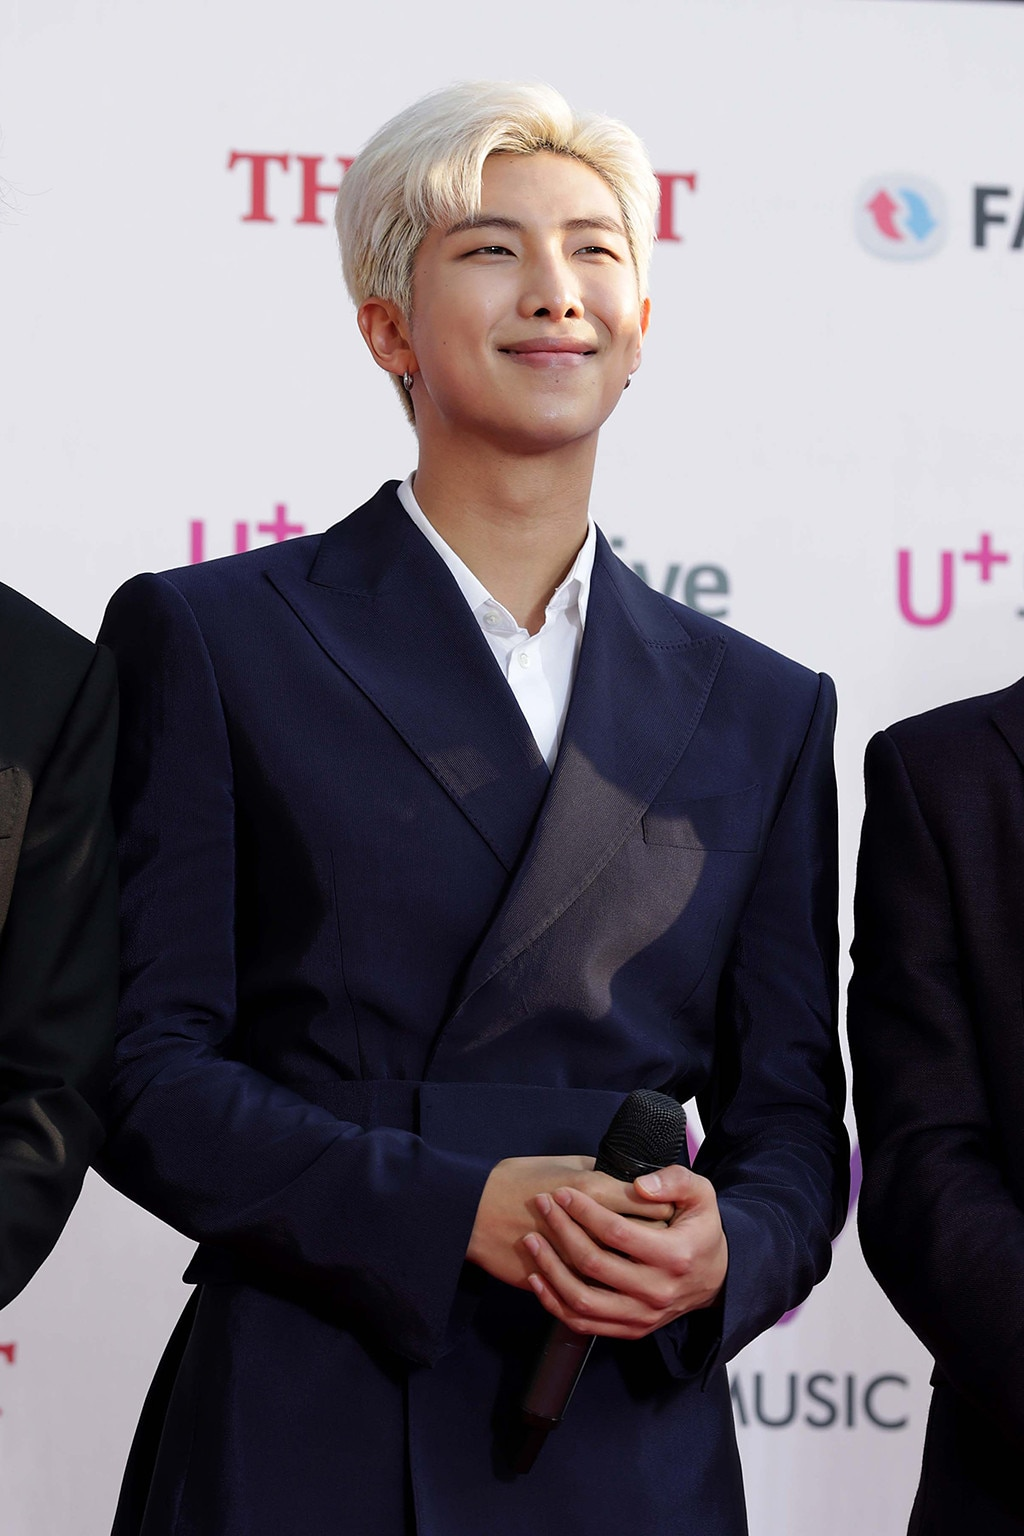 Latest Pictures Bts Rm Makes The Case For Going Dark With His Latest Beauty Look